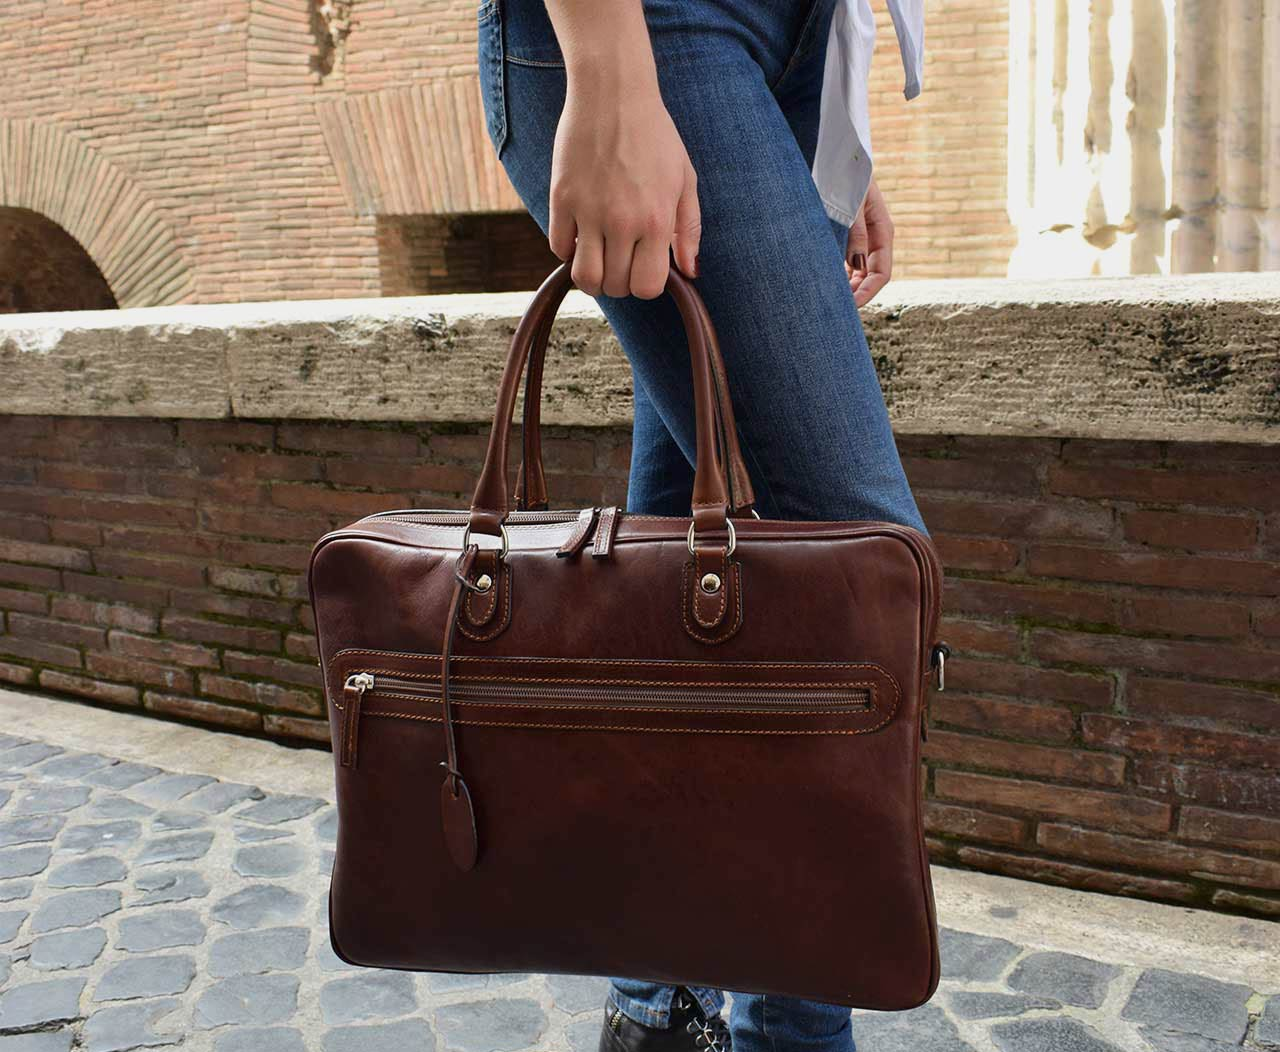 Italian leather handmade briefcase, Mancini Leather Since 1918